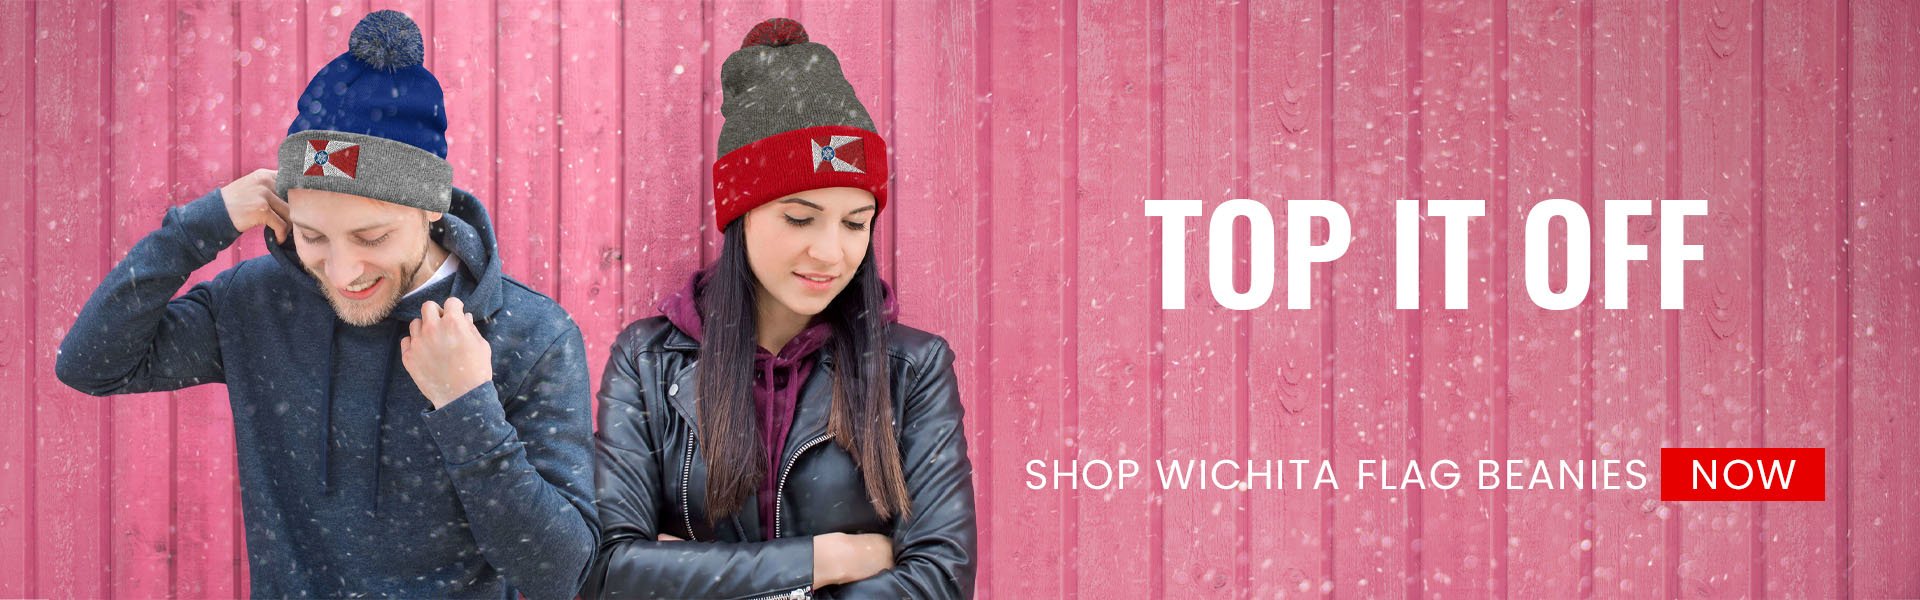 Top it off! Show Wichita flag Beanie hats now.